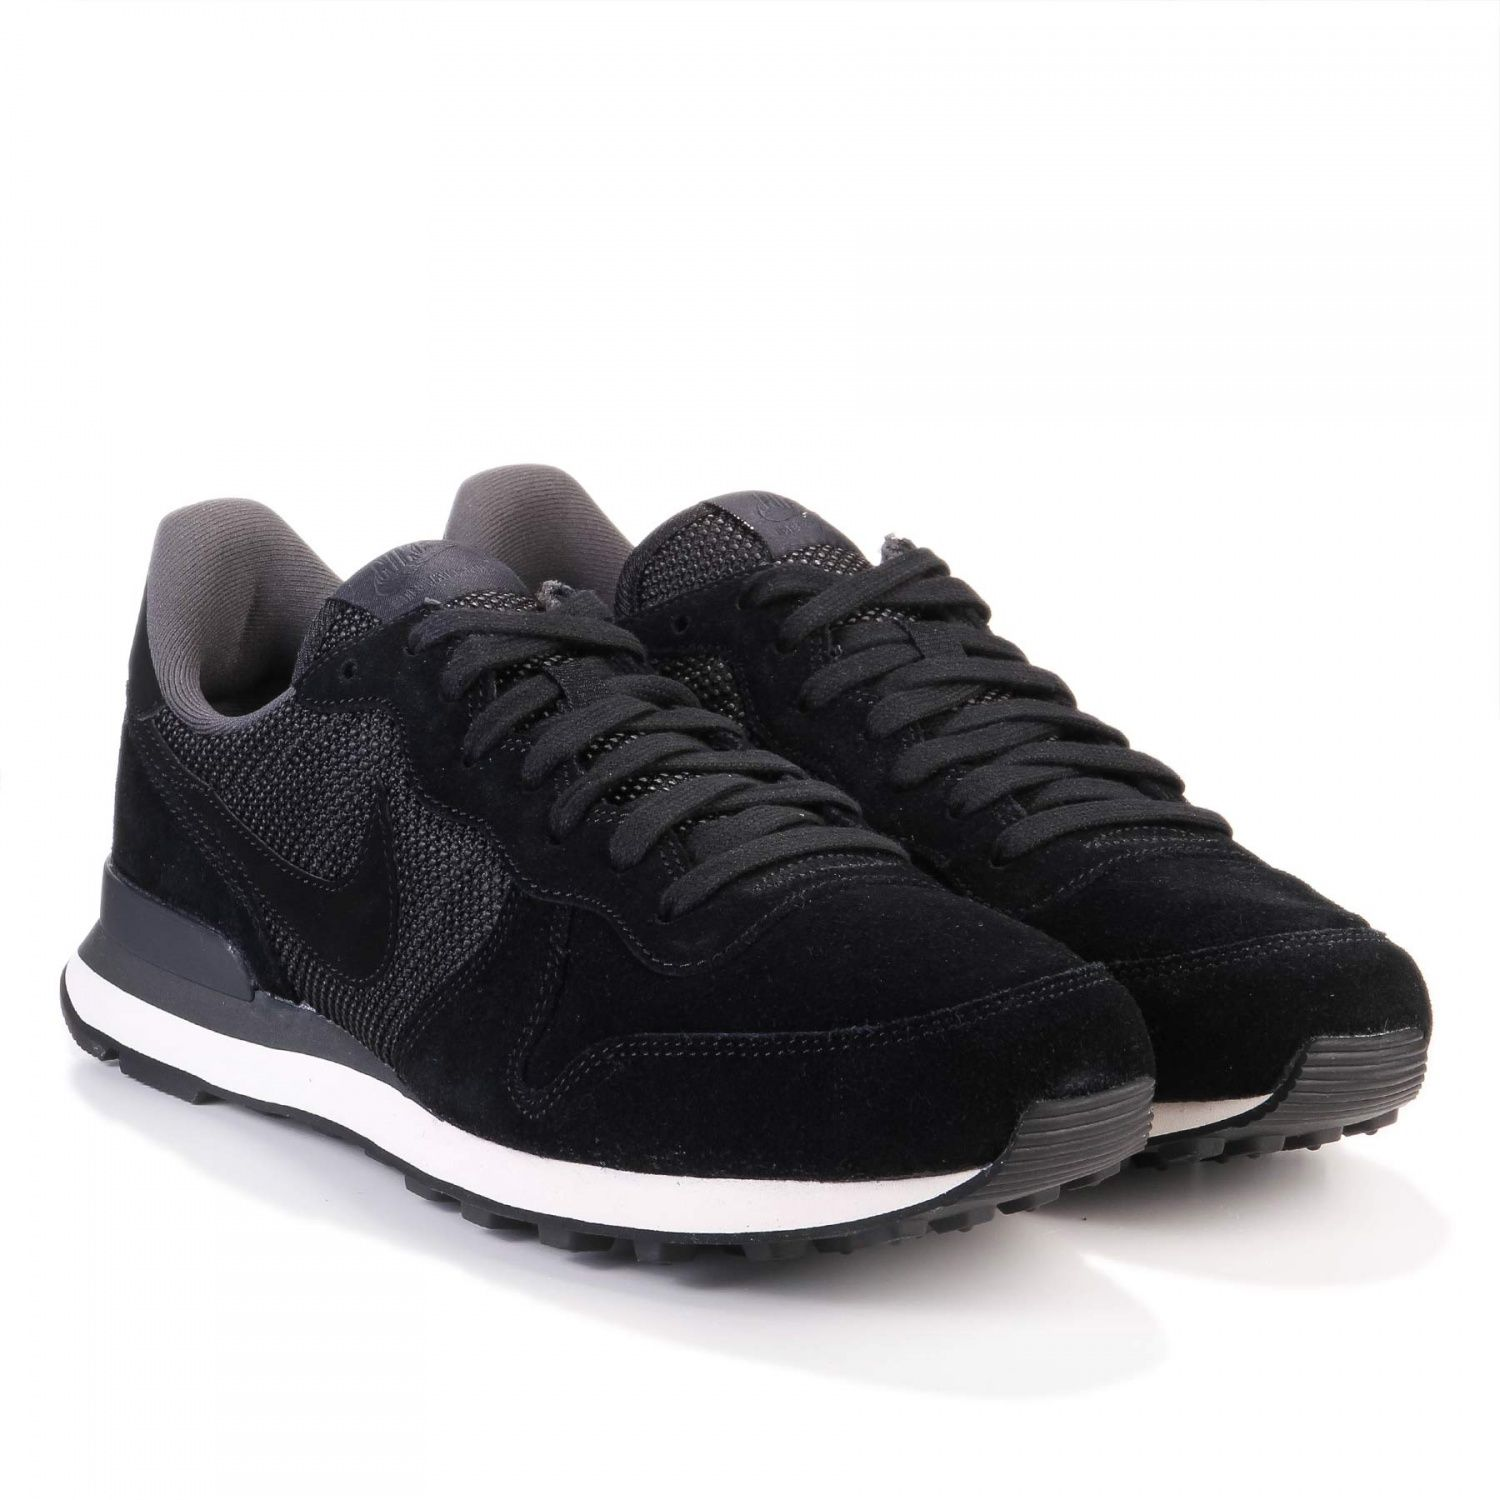 nike internationalist herren prm